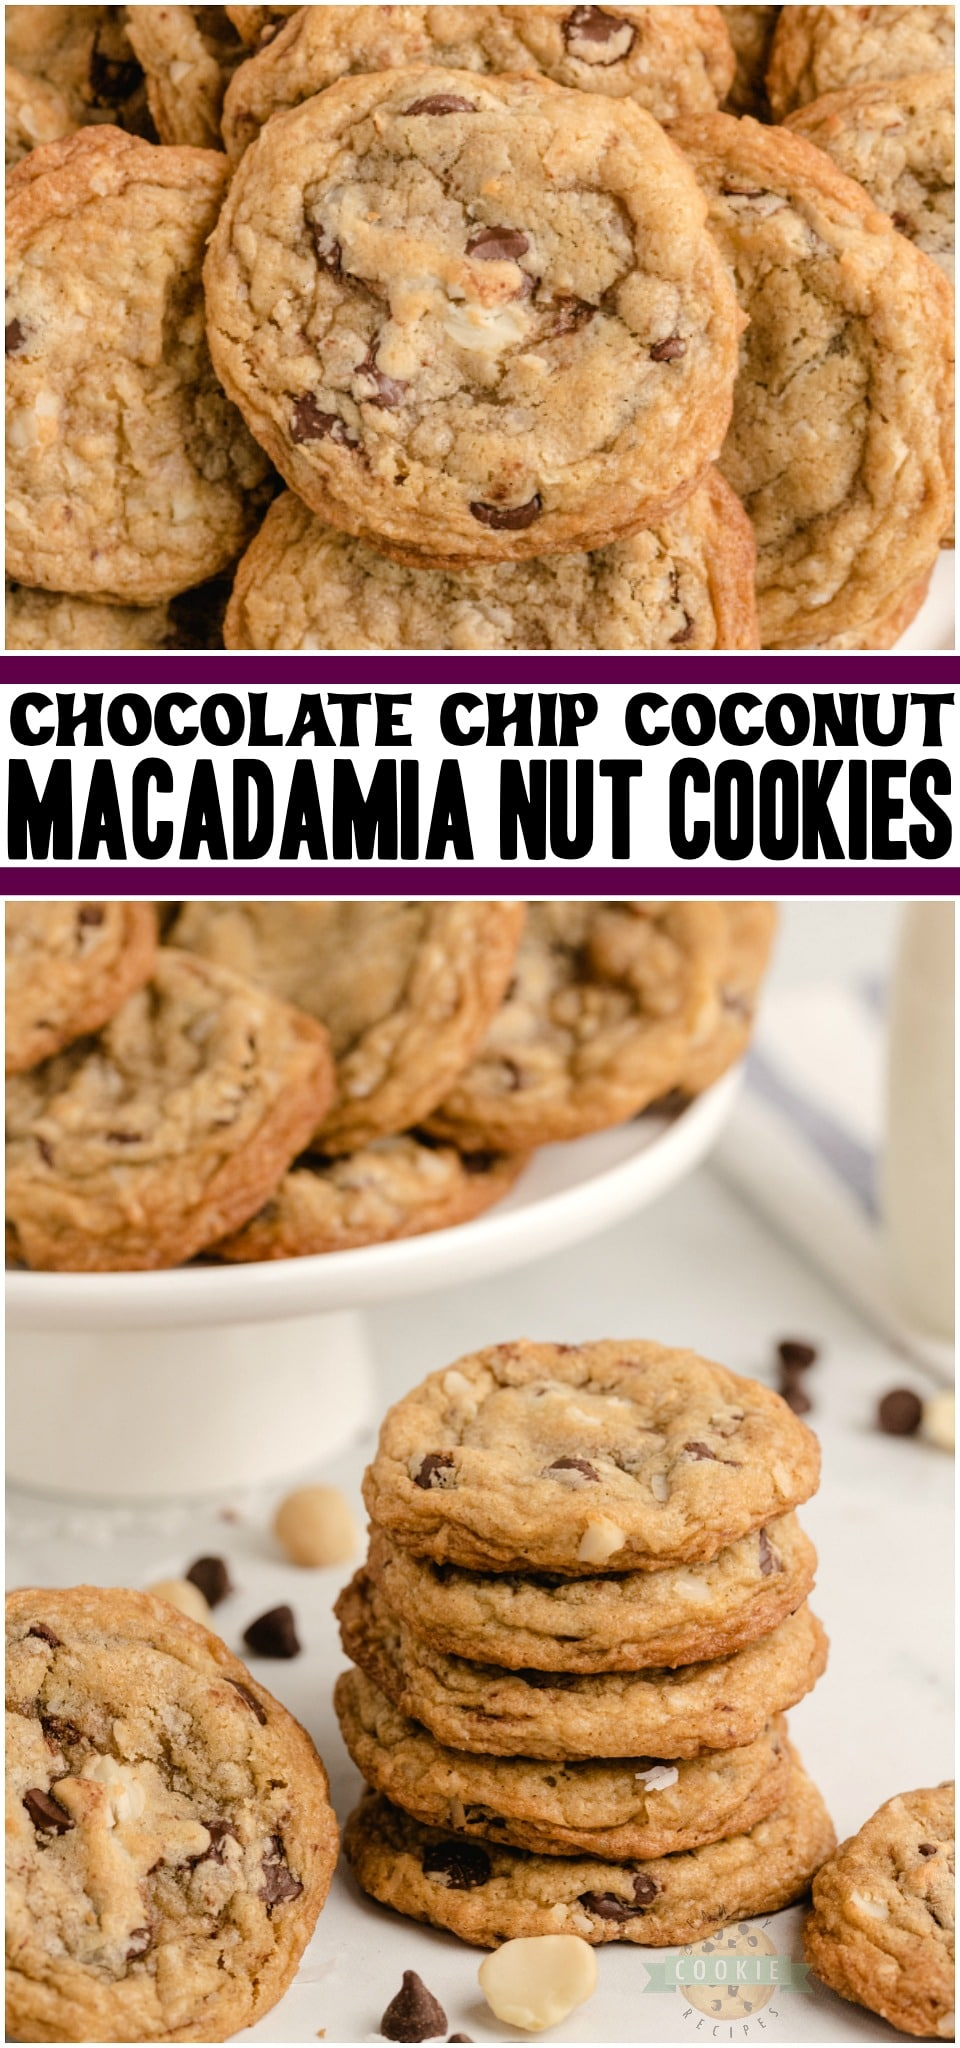 Chocolate chip macadamia nut cookies are soft & chewy cookies loaded with sweet chocolate and nuts! These Coconut Macadamia Nut Cookies are perfect for chocolate chip lovers who want to try something a bit different. #chocolatechip #coconut #macadamianut #cookies #baking #dessert #chocolatecoconut #recipe from FAMILY COOKIE RECIPES via @familycookierecipes